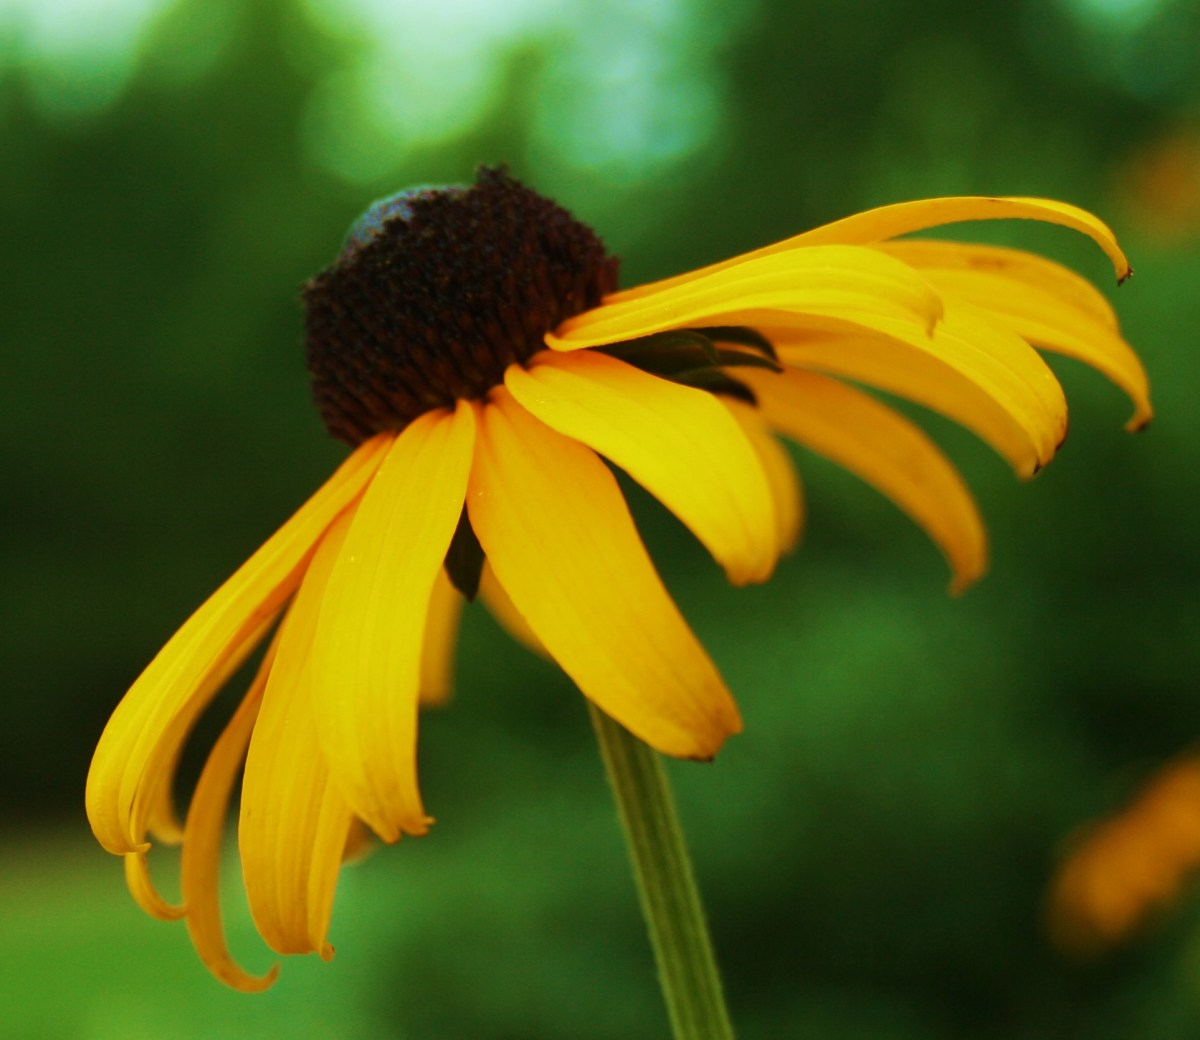 Cultivating a butterfly garden? You'll definitely want to include blackeyed Susan!